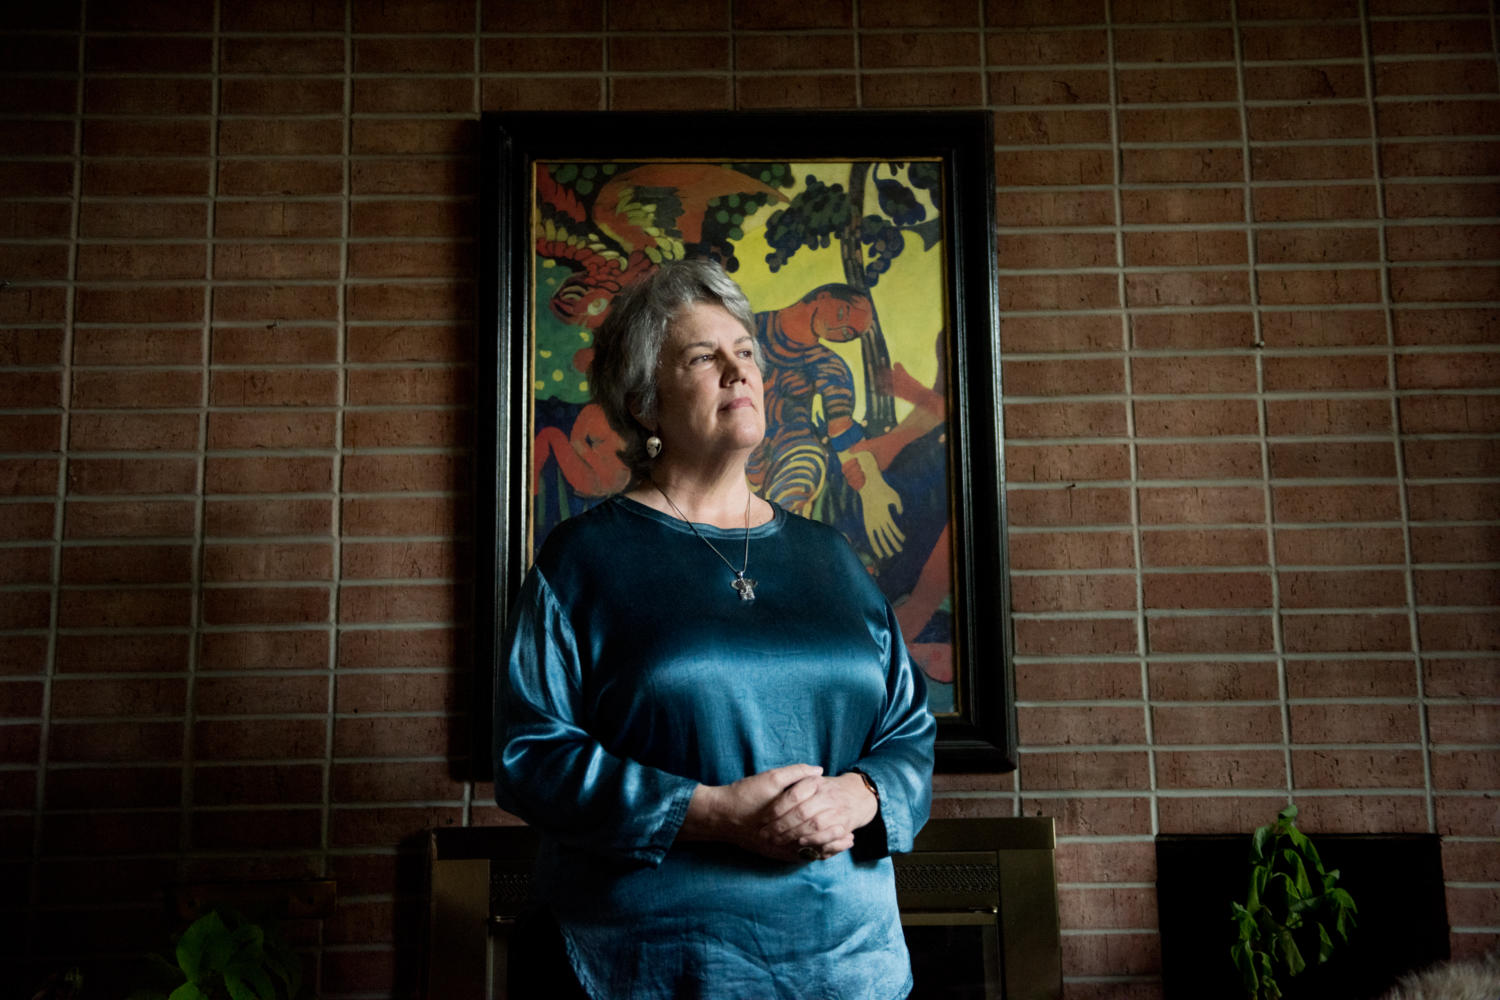 Political science professor Virginia Tilley, of Gainesville, Florida, poses for a portrait Friday, Sept. 22, 2017 at her home in Carbondale. Tilley specializes in comparative and international politics of ethnic and racial conflict.Tilley was recently subject of controversy for a report  she co-wrote with Richard Faulk accusing Israel of apartheid, which was released and subsequently retracted in March 2017 by the United Nations Economic and Social Commission for Western Asia. (Brian Muñoz | @BrianMMunoz)